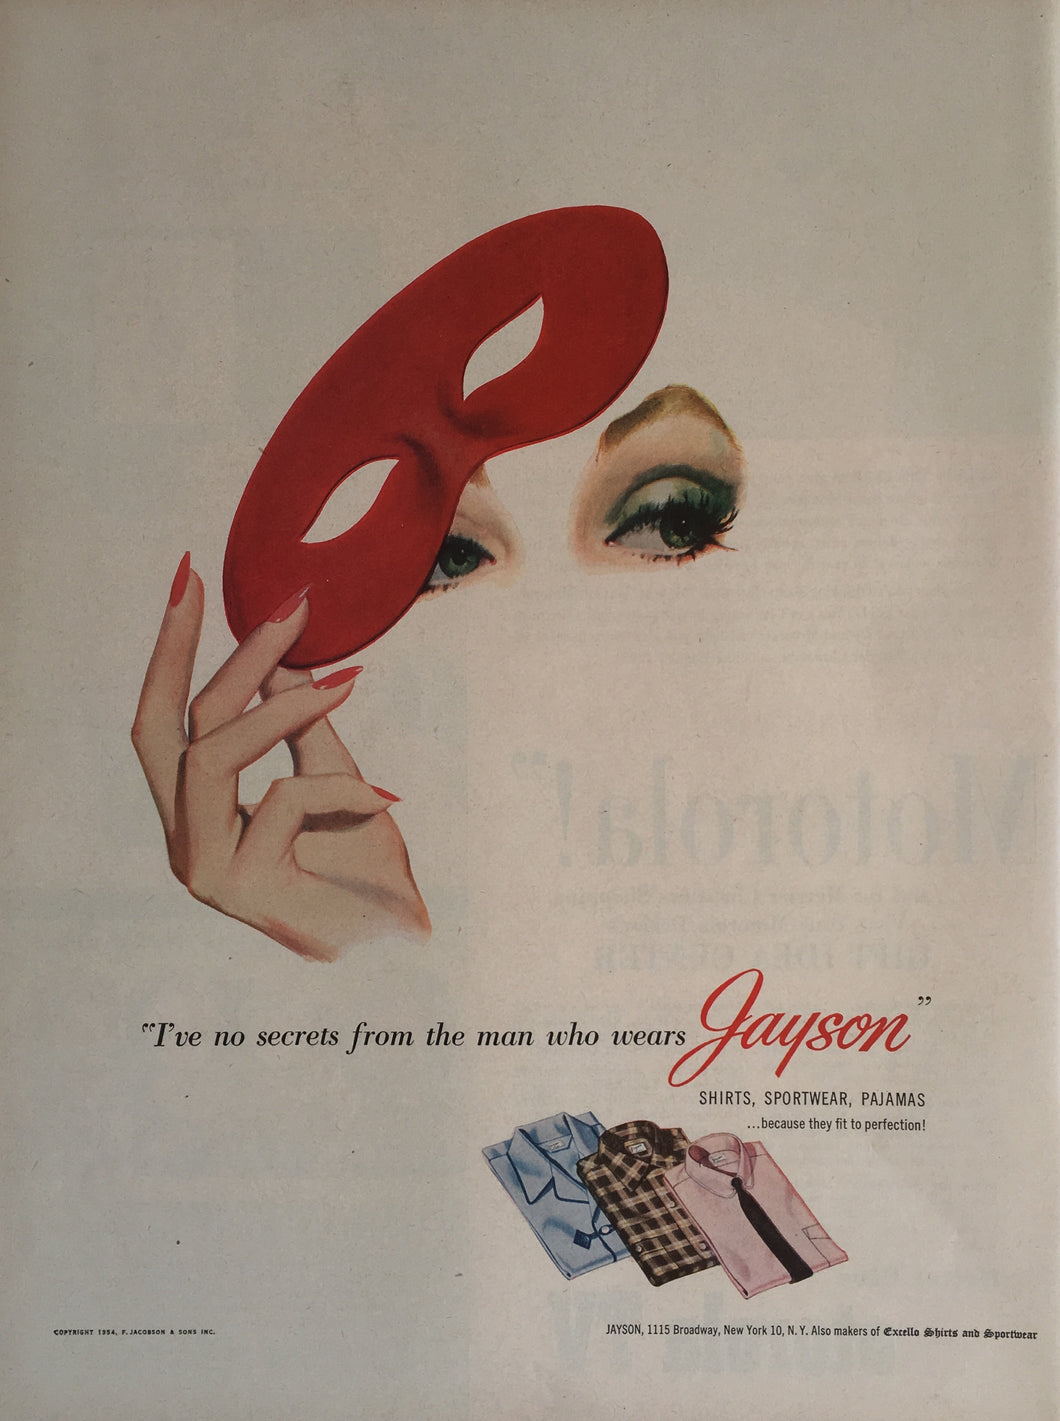 Vintage Jayson Men's Fashion Advertisement